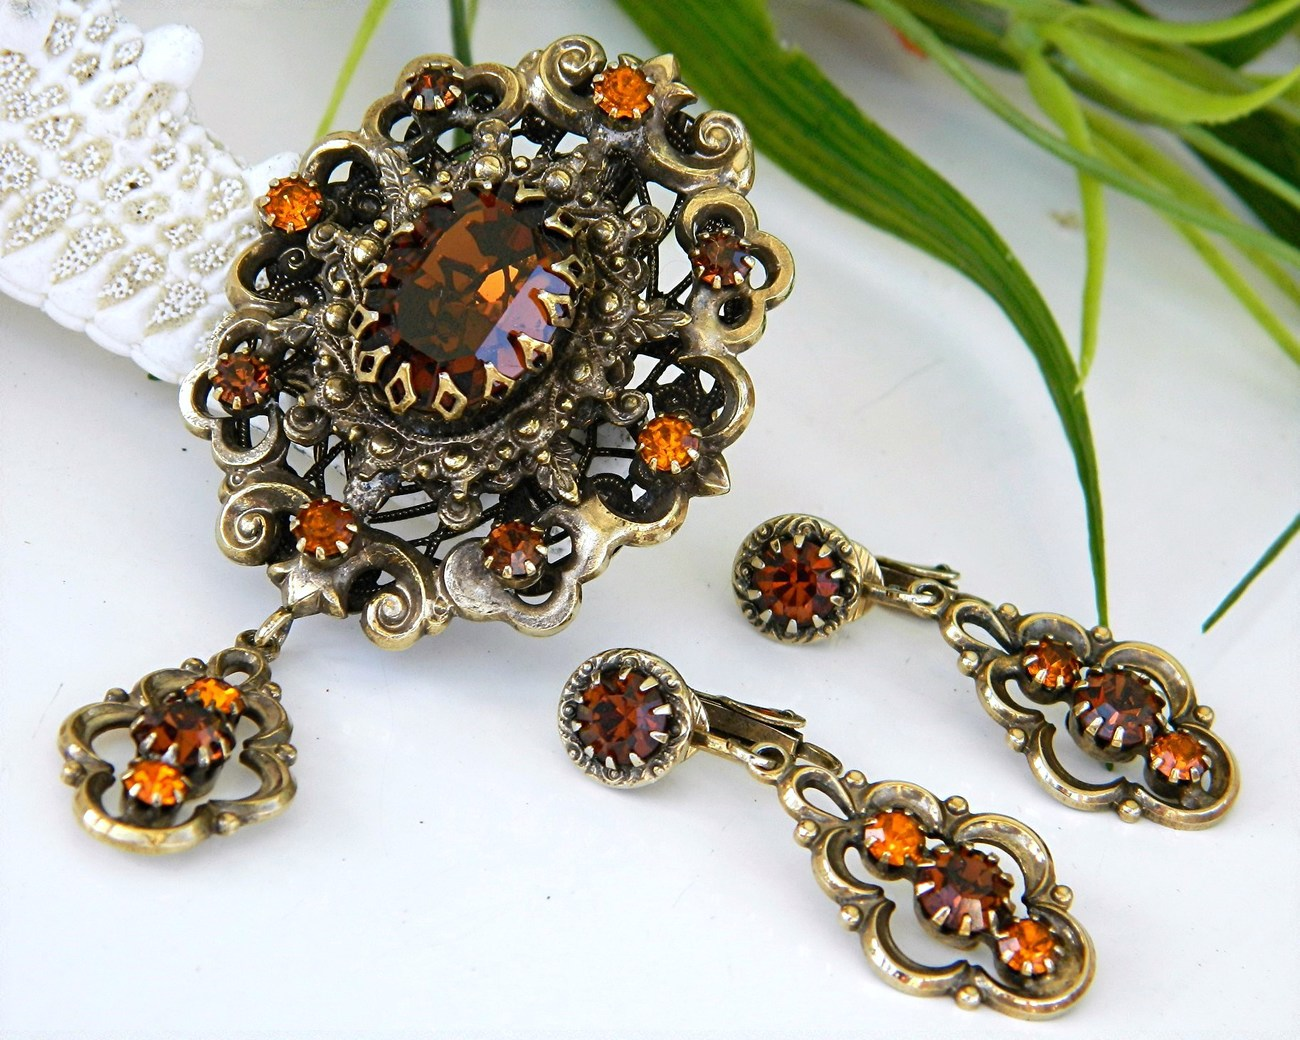 Vintage_hobe_pendant_brooch_earrings_demi_parure_rhinestone_amber